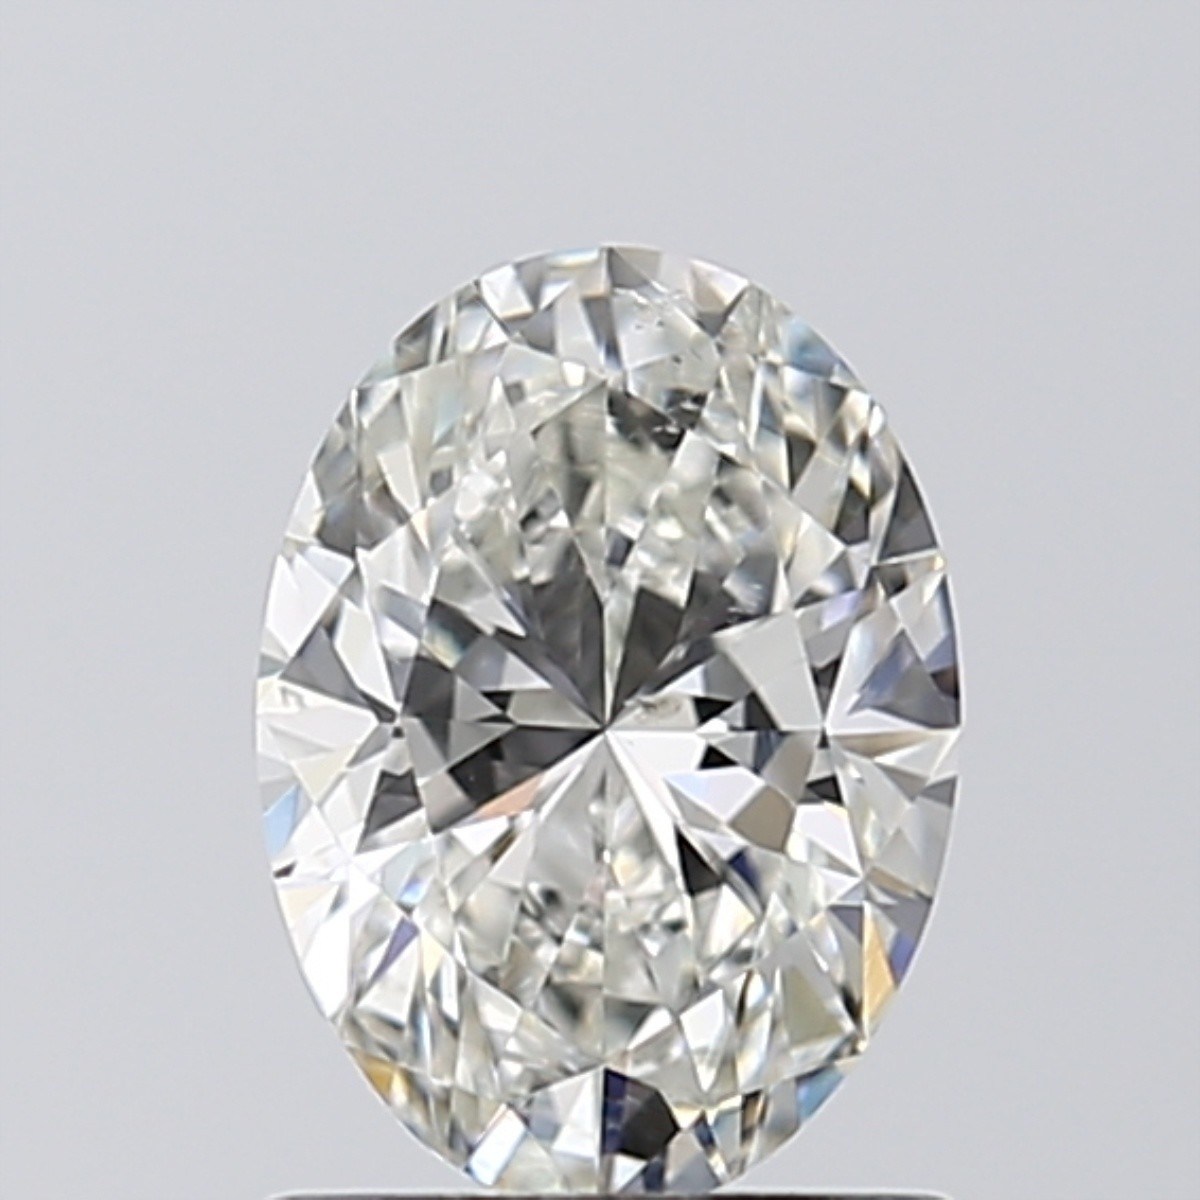 1.01 Carat Oval Diamond (G/SI1)